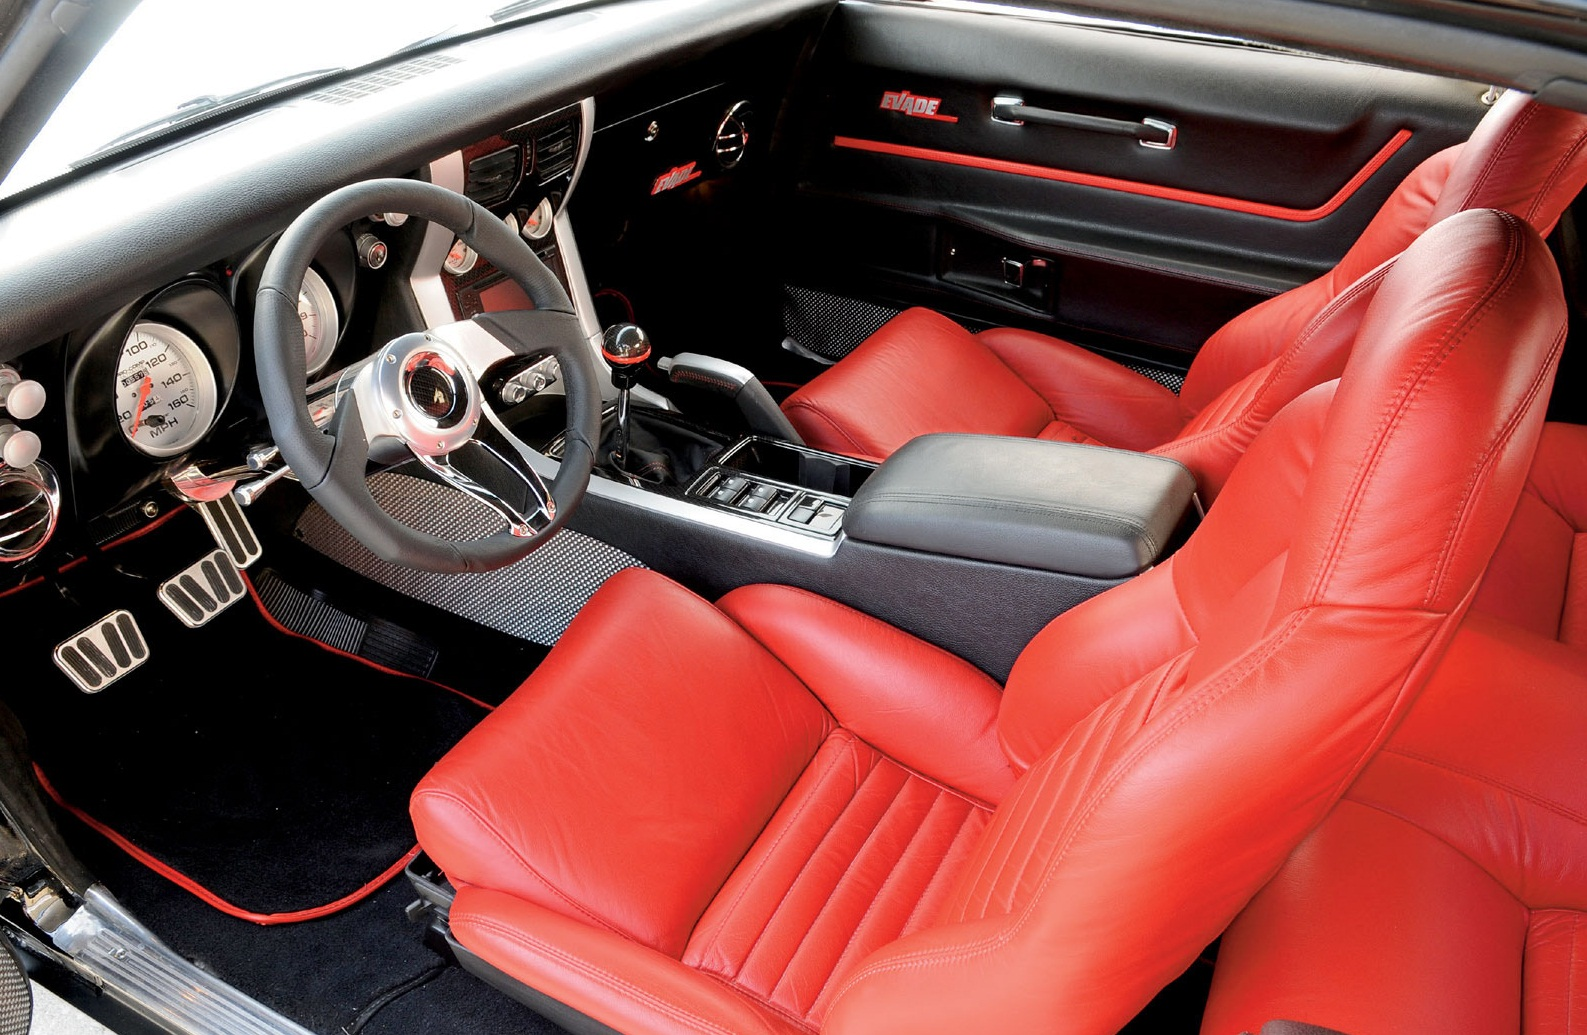 Custom Muscle Car Interior 1968 Chevy Camaro Z28 Interior